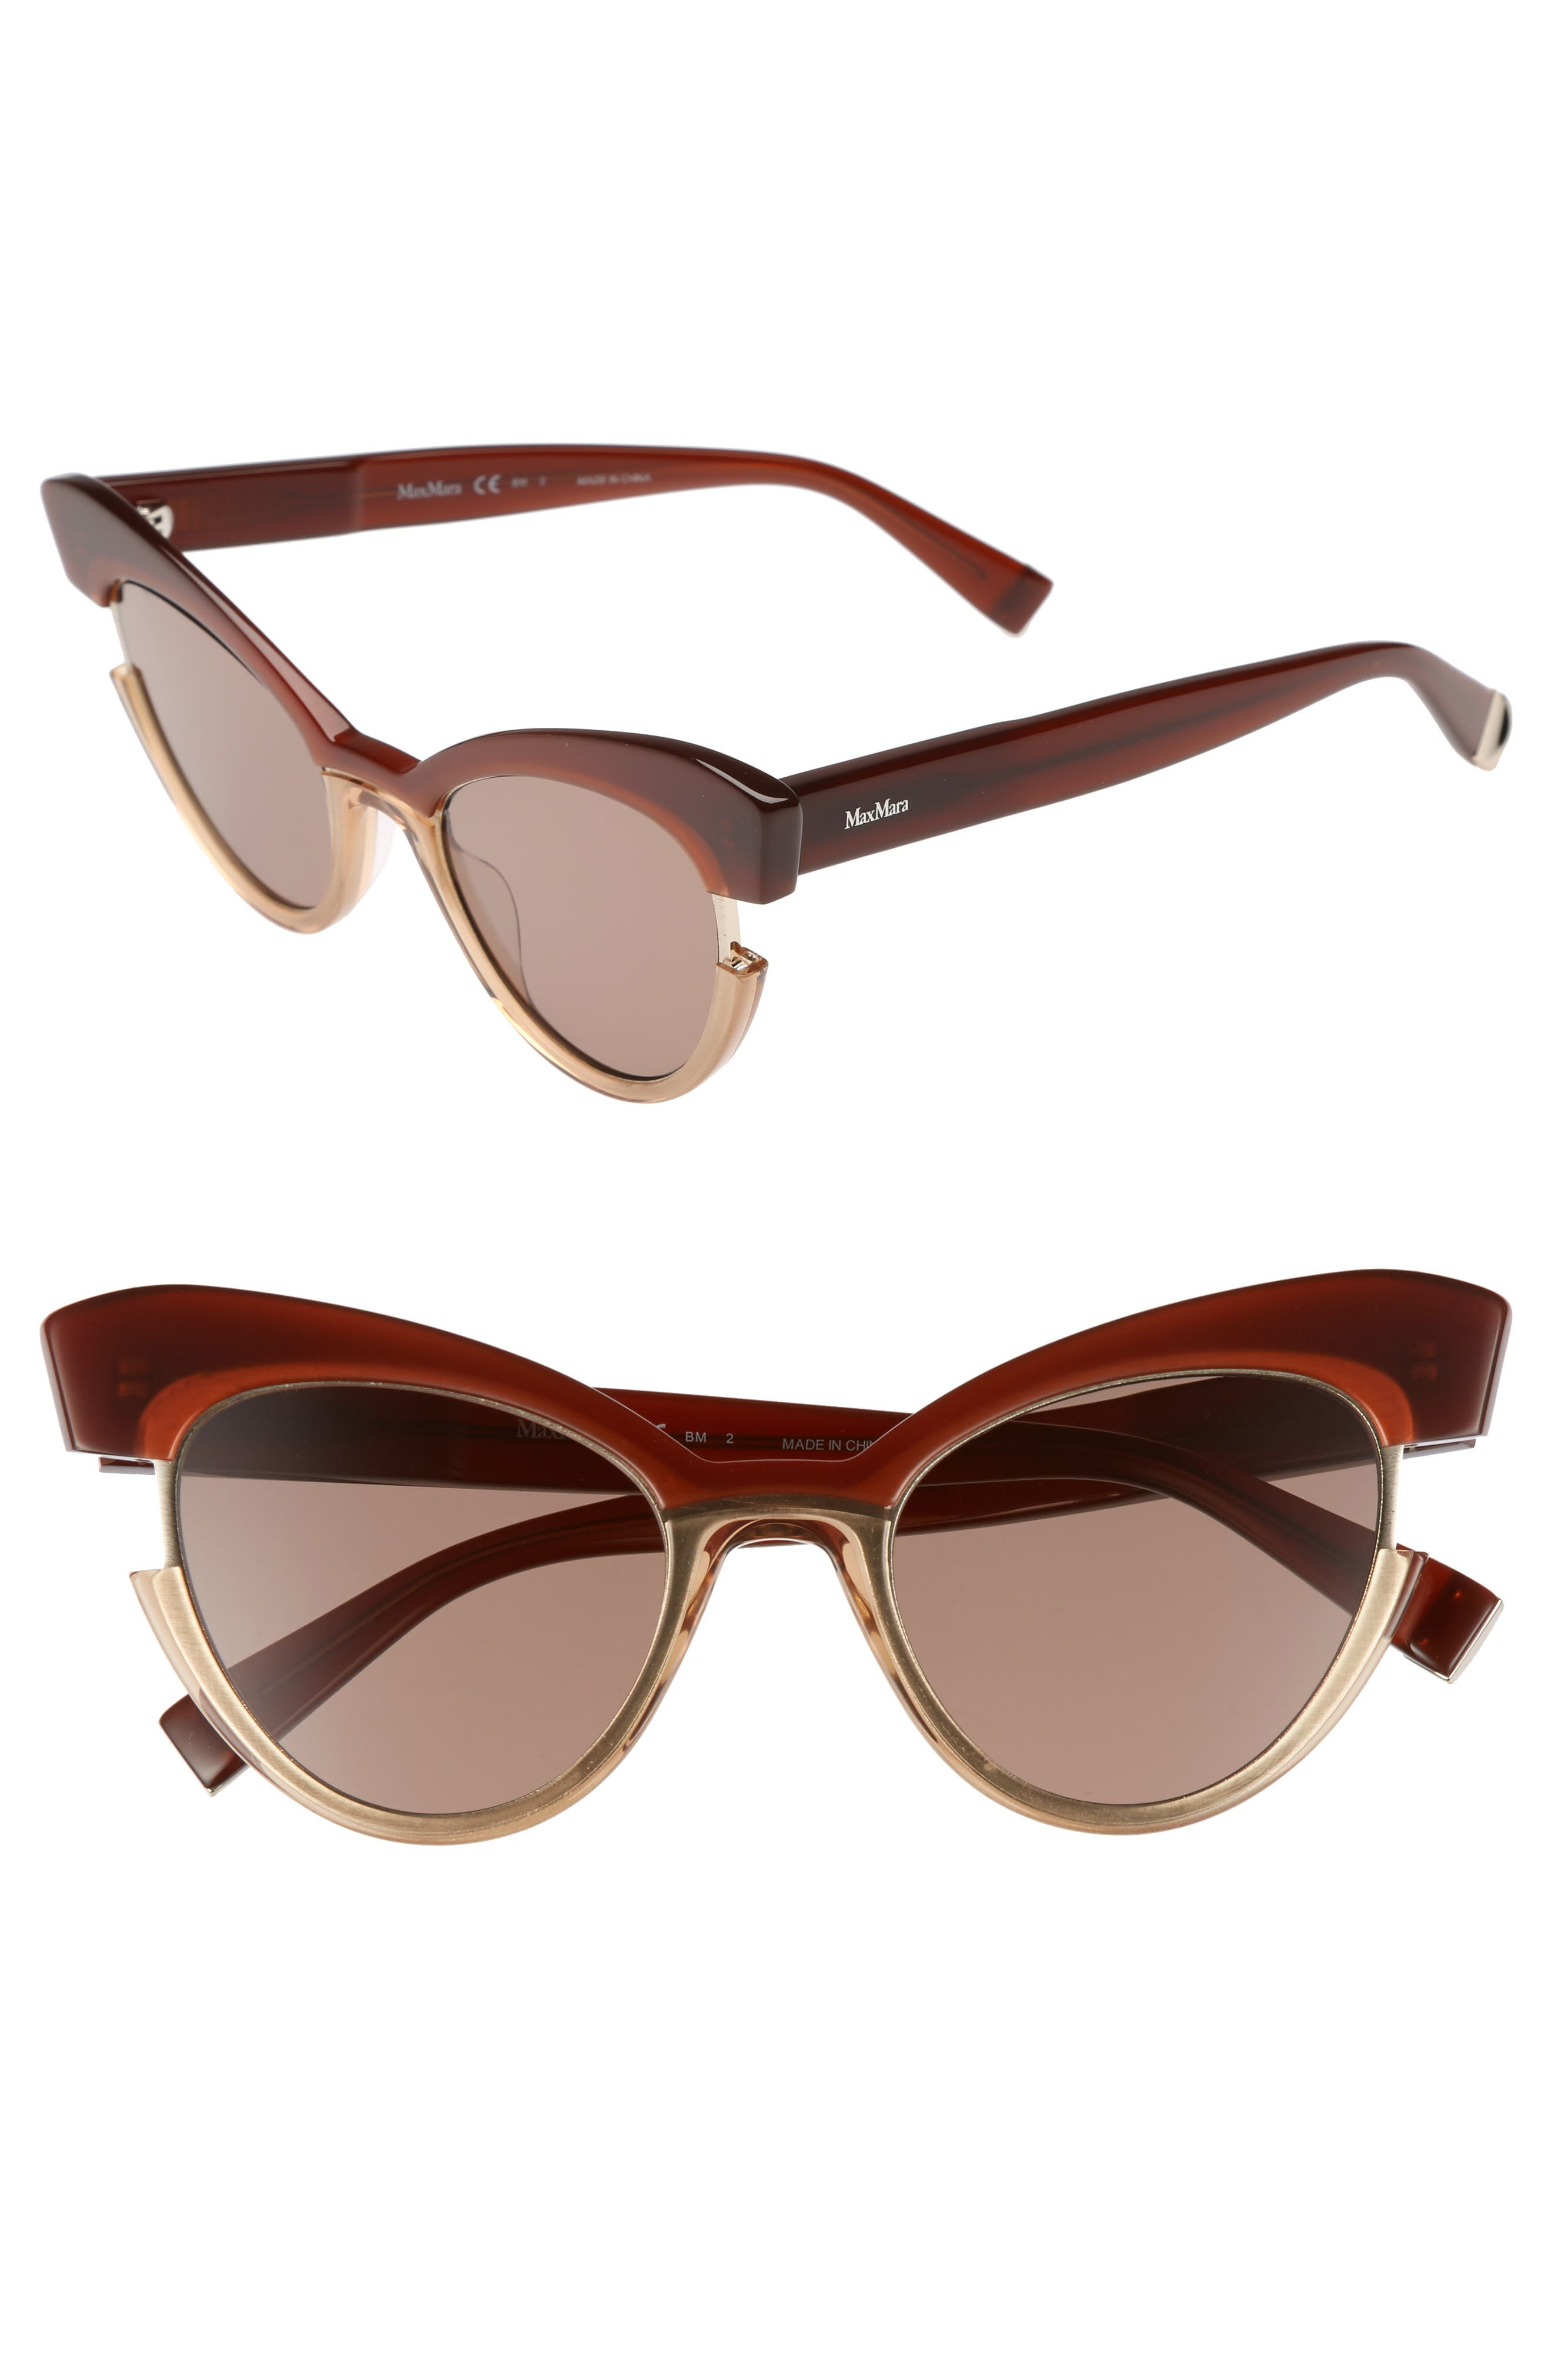 Alternate Image 1 Selected - Max Mara 49mm Gradient Lens Cat Eye Sunglasses